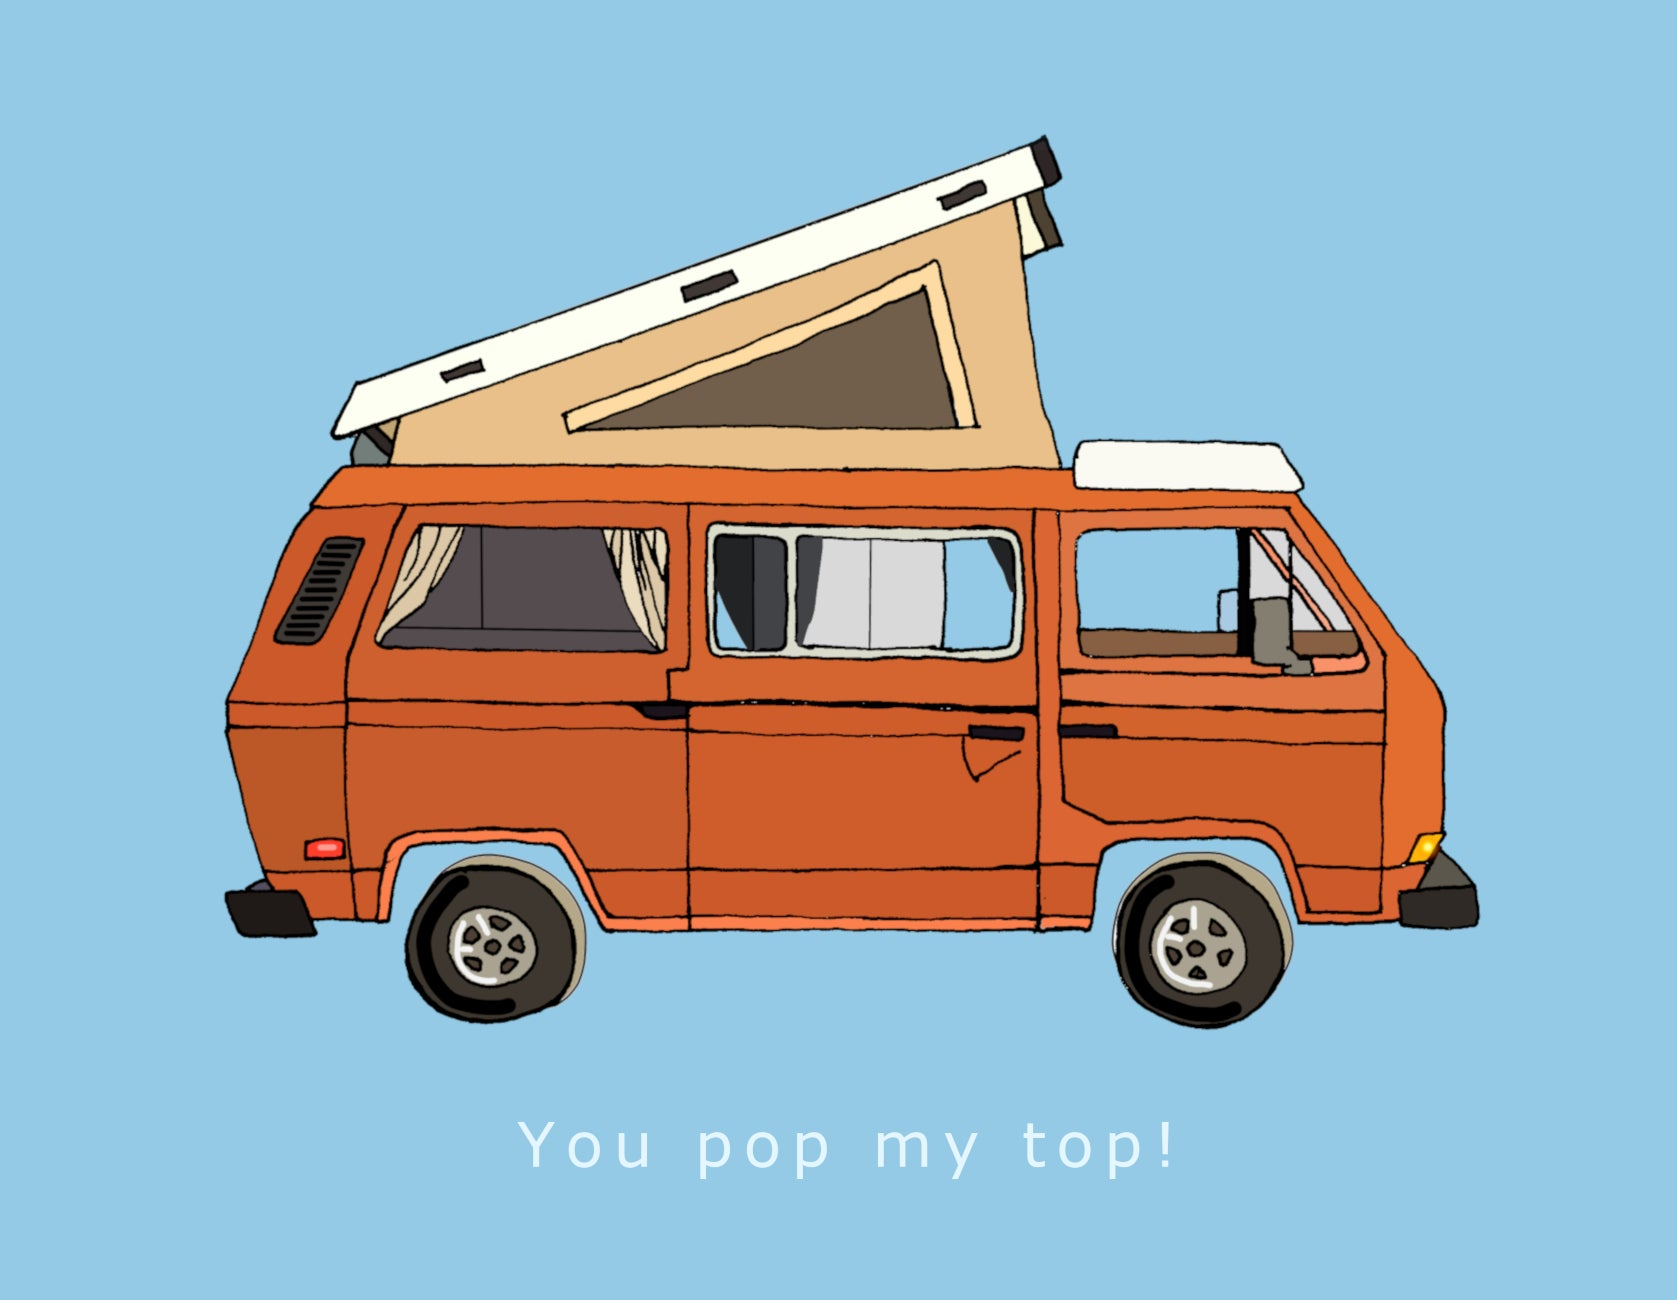 Made in Canada camping themed love and friendship card, with drawing of a vintage orange Volkswagen camper bus with pop top. Caption reads: You pop my top!